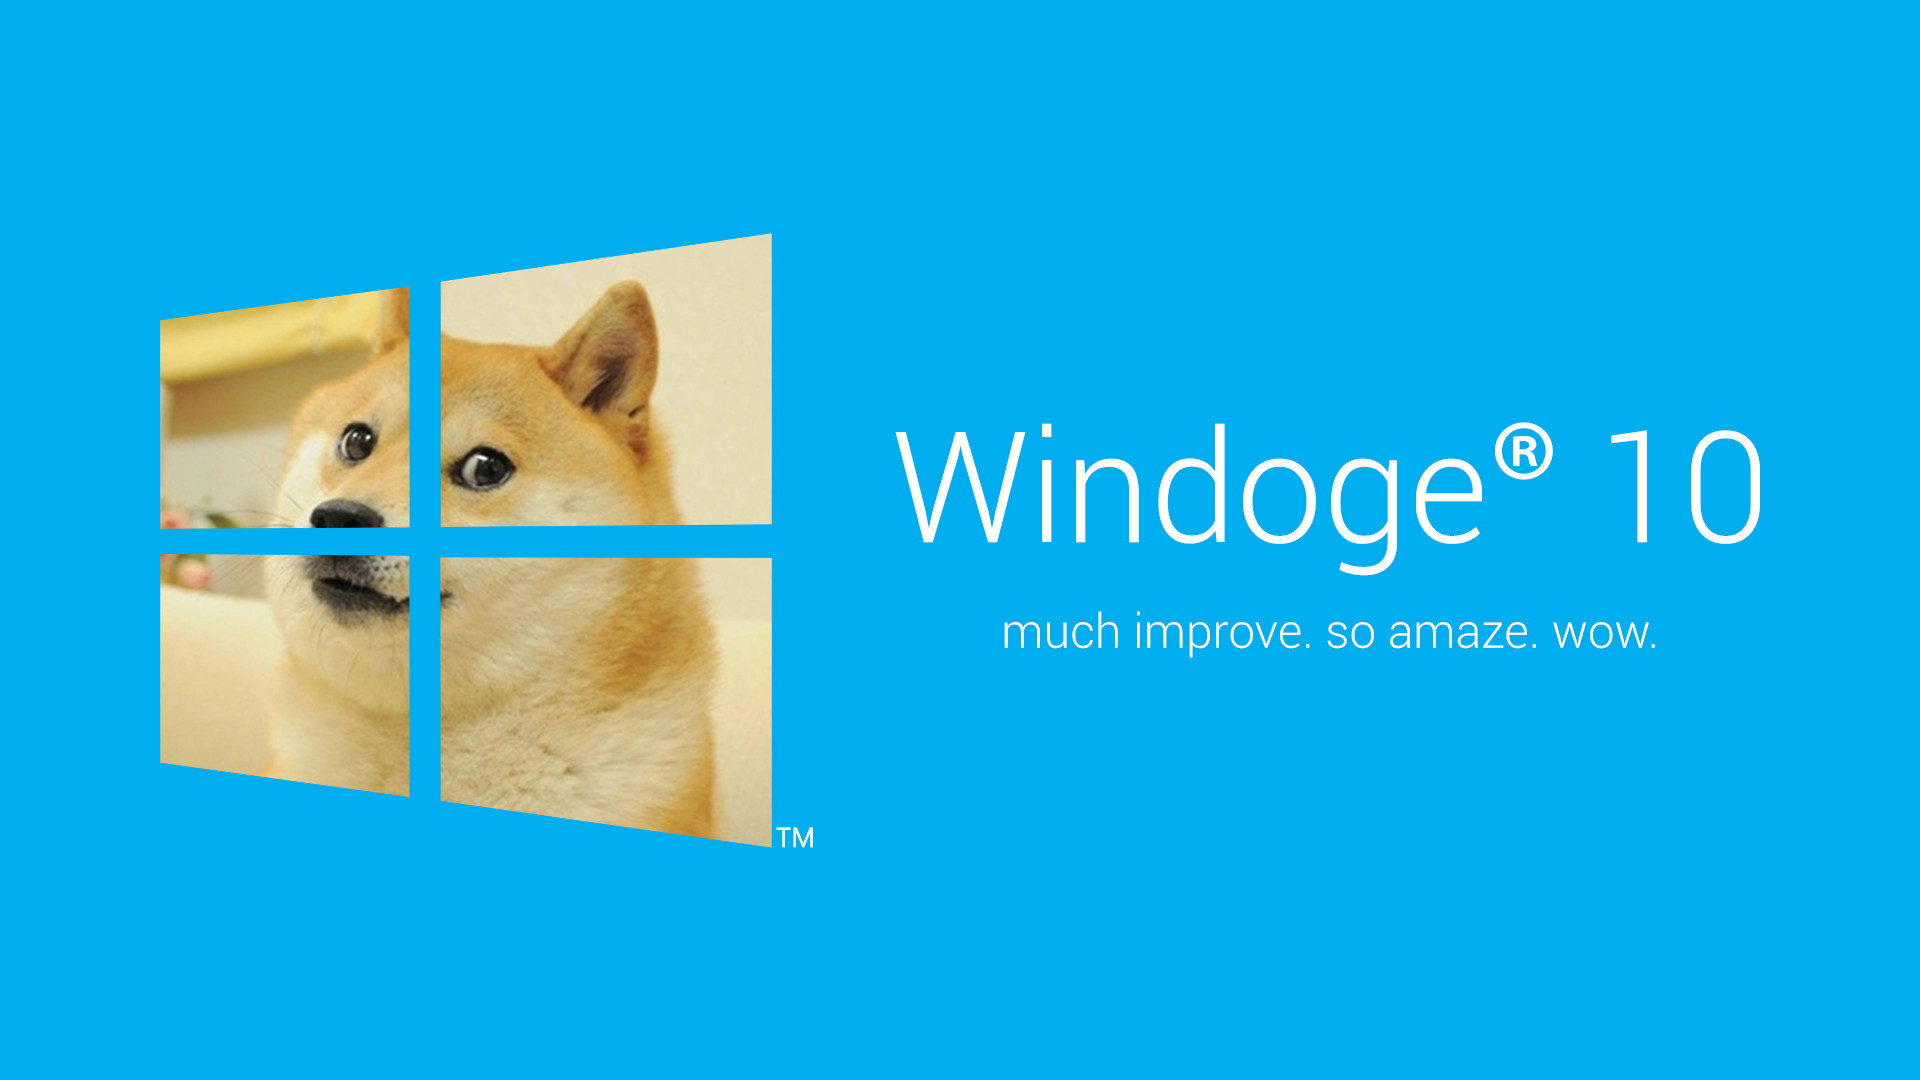 My collection of doge wallpapers